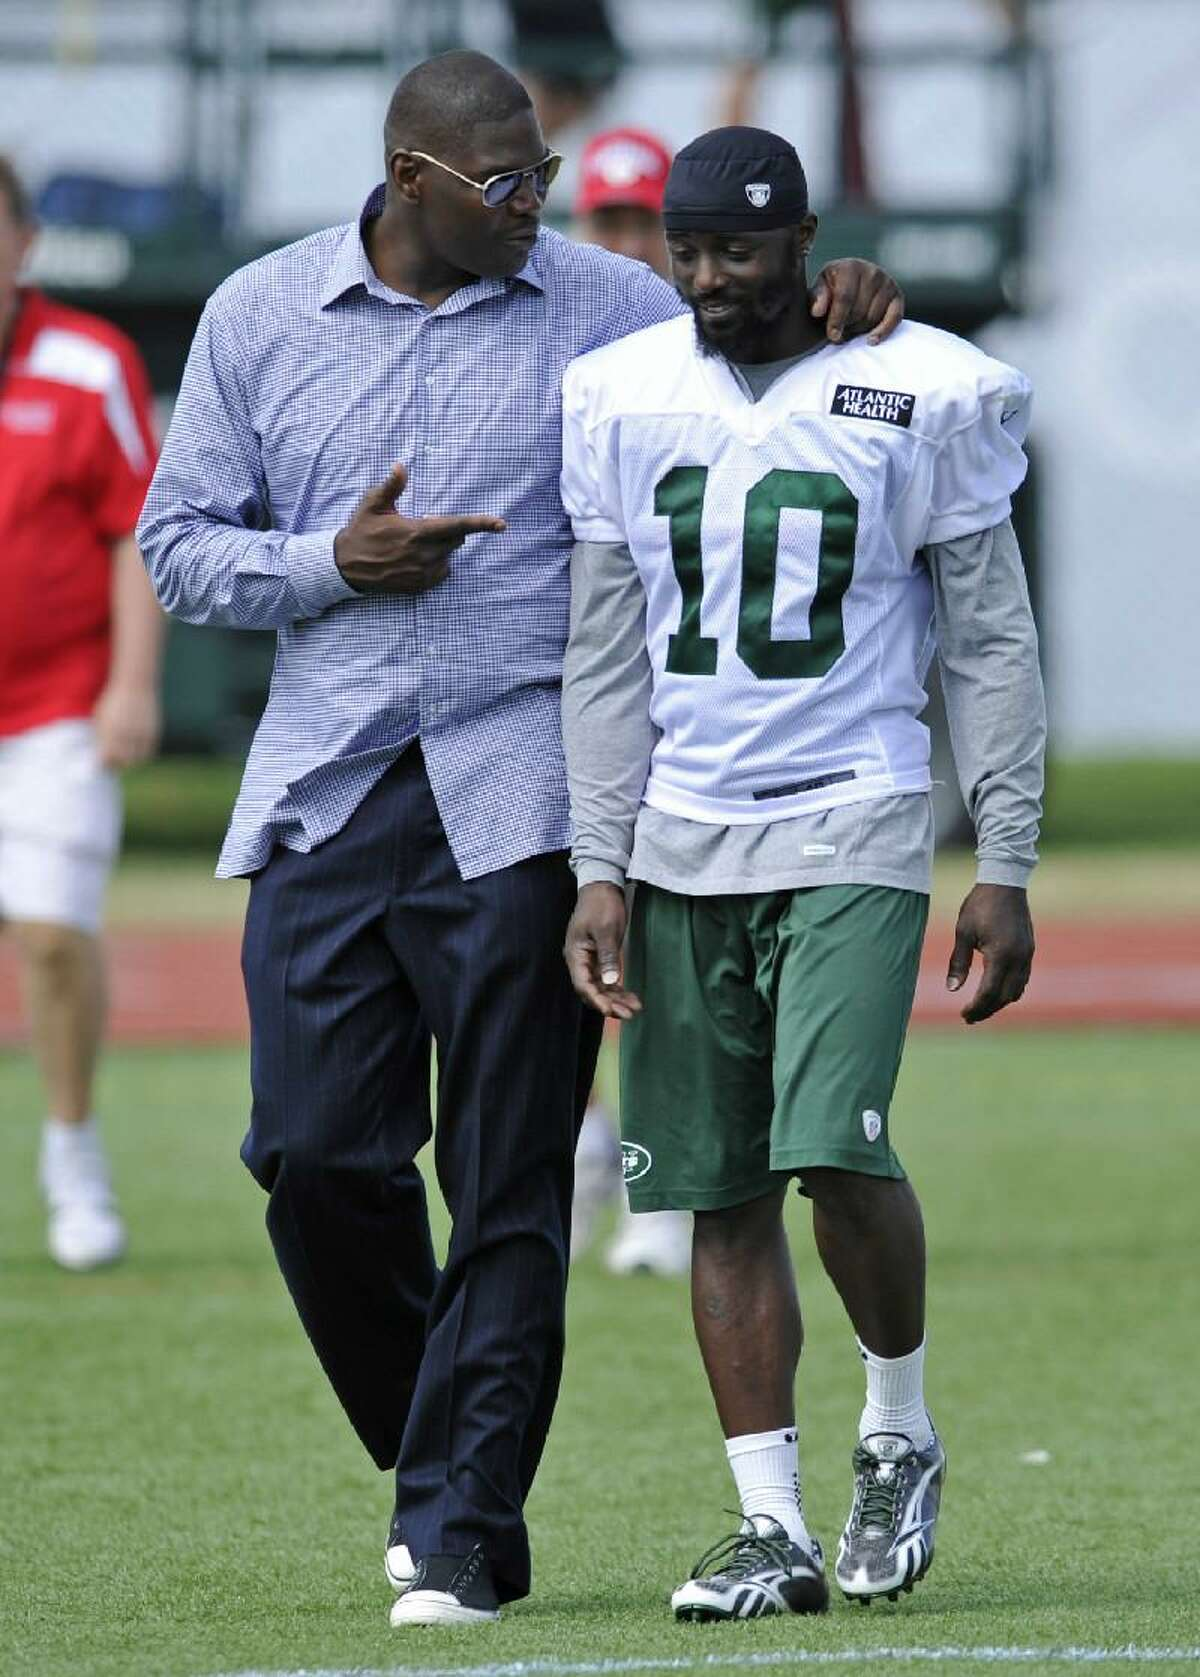 ASSOCIATED PRESS Former New York Jets receiver Keyshawn Johnson, left, talks with Jets wide receiver Santonio Holmes after practice on opening day of their training camp Friday in Cortland, N.Y.